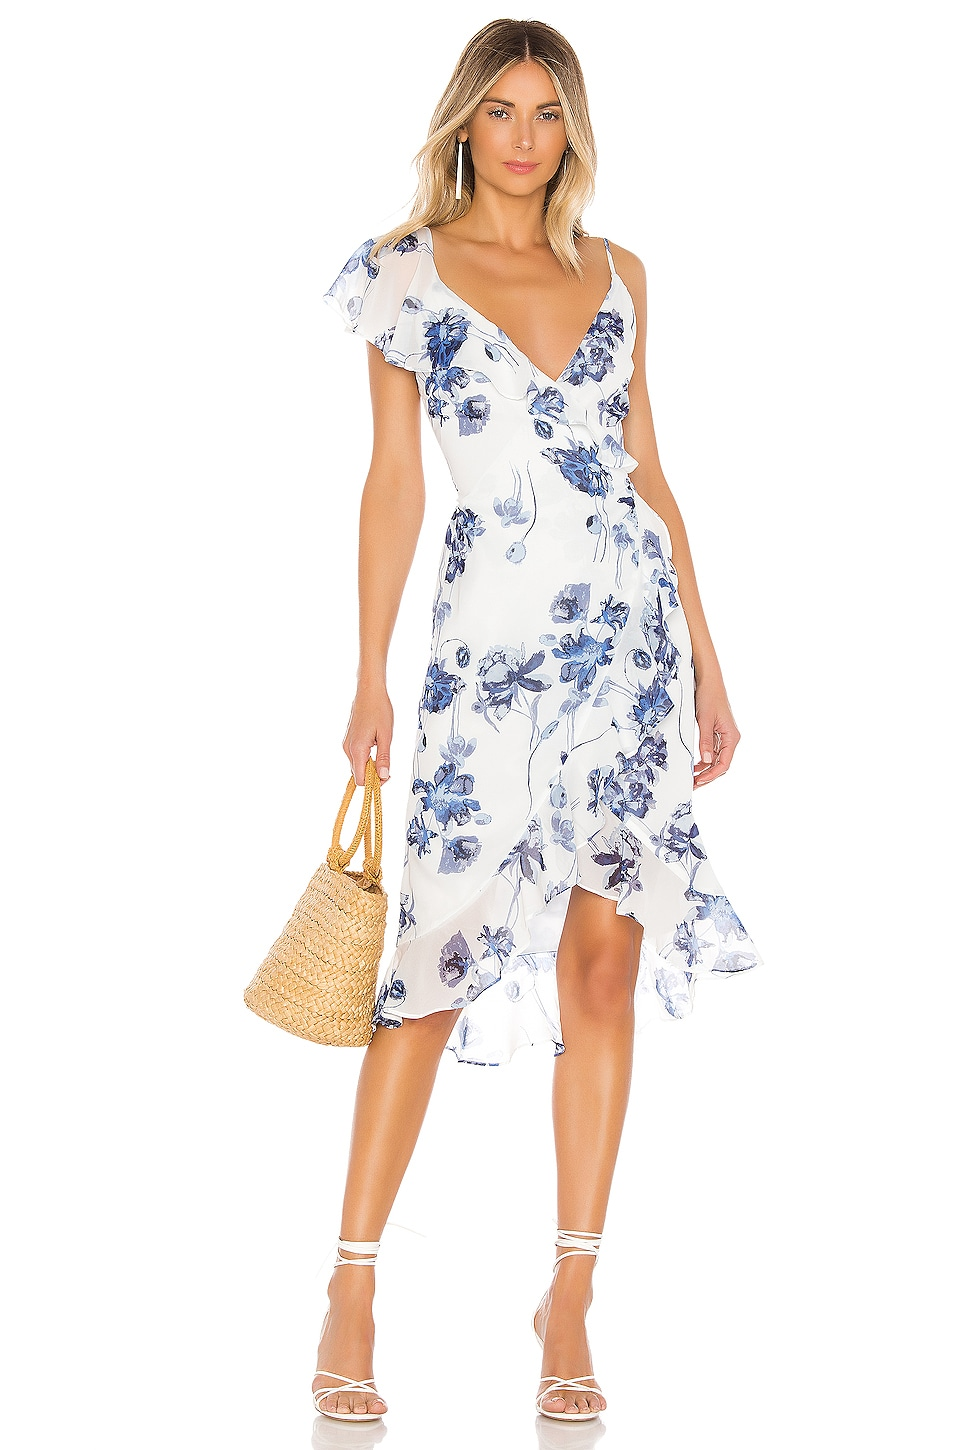 House of Harlow 1960 Dara Dress in Floral Multi